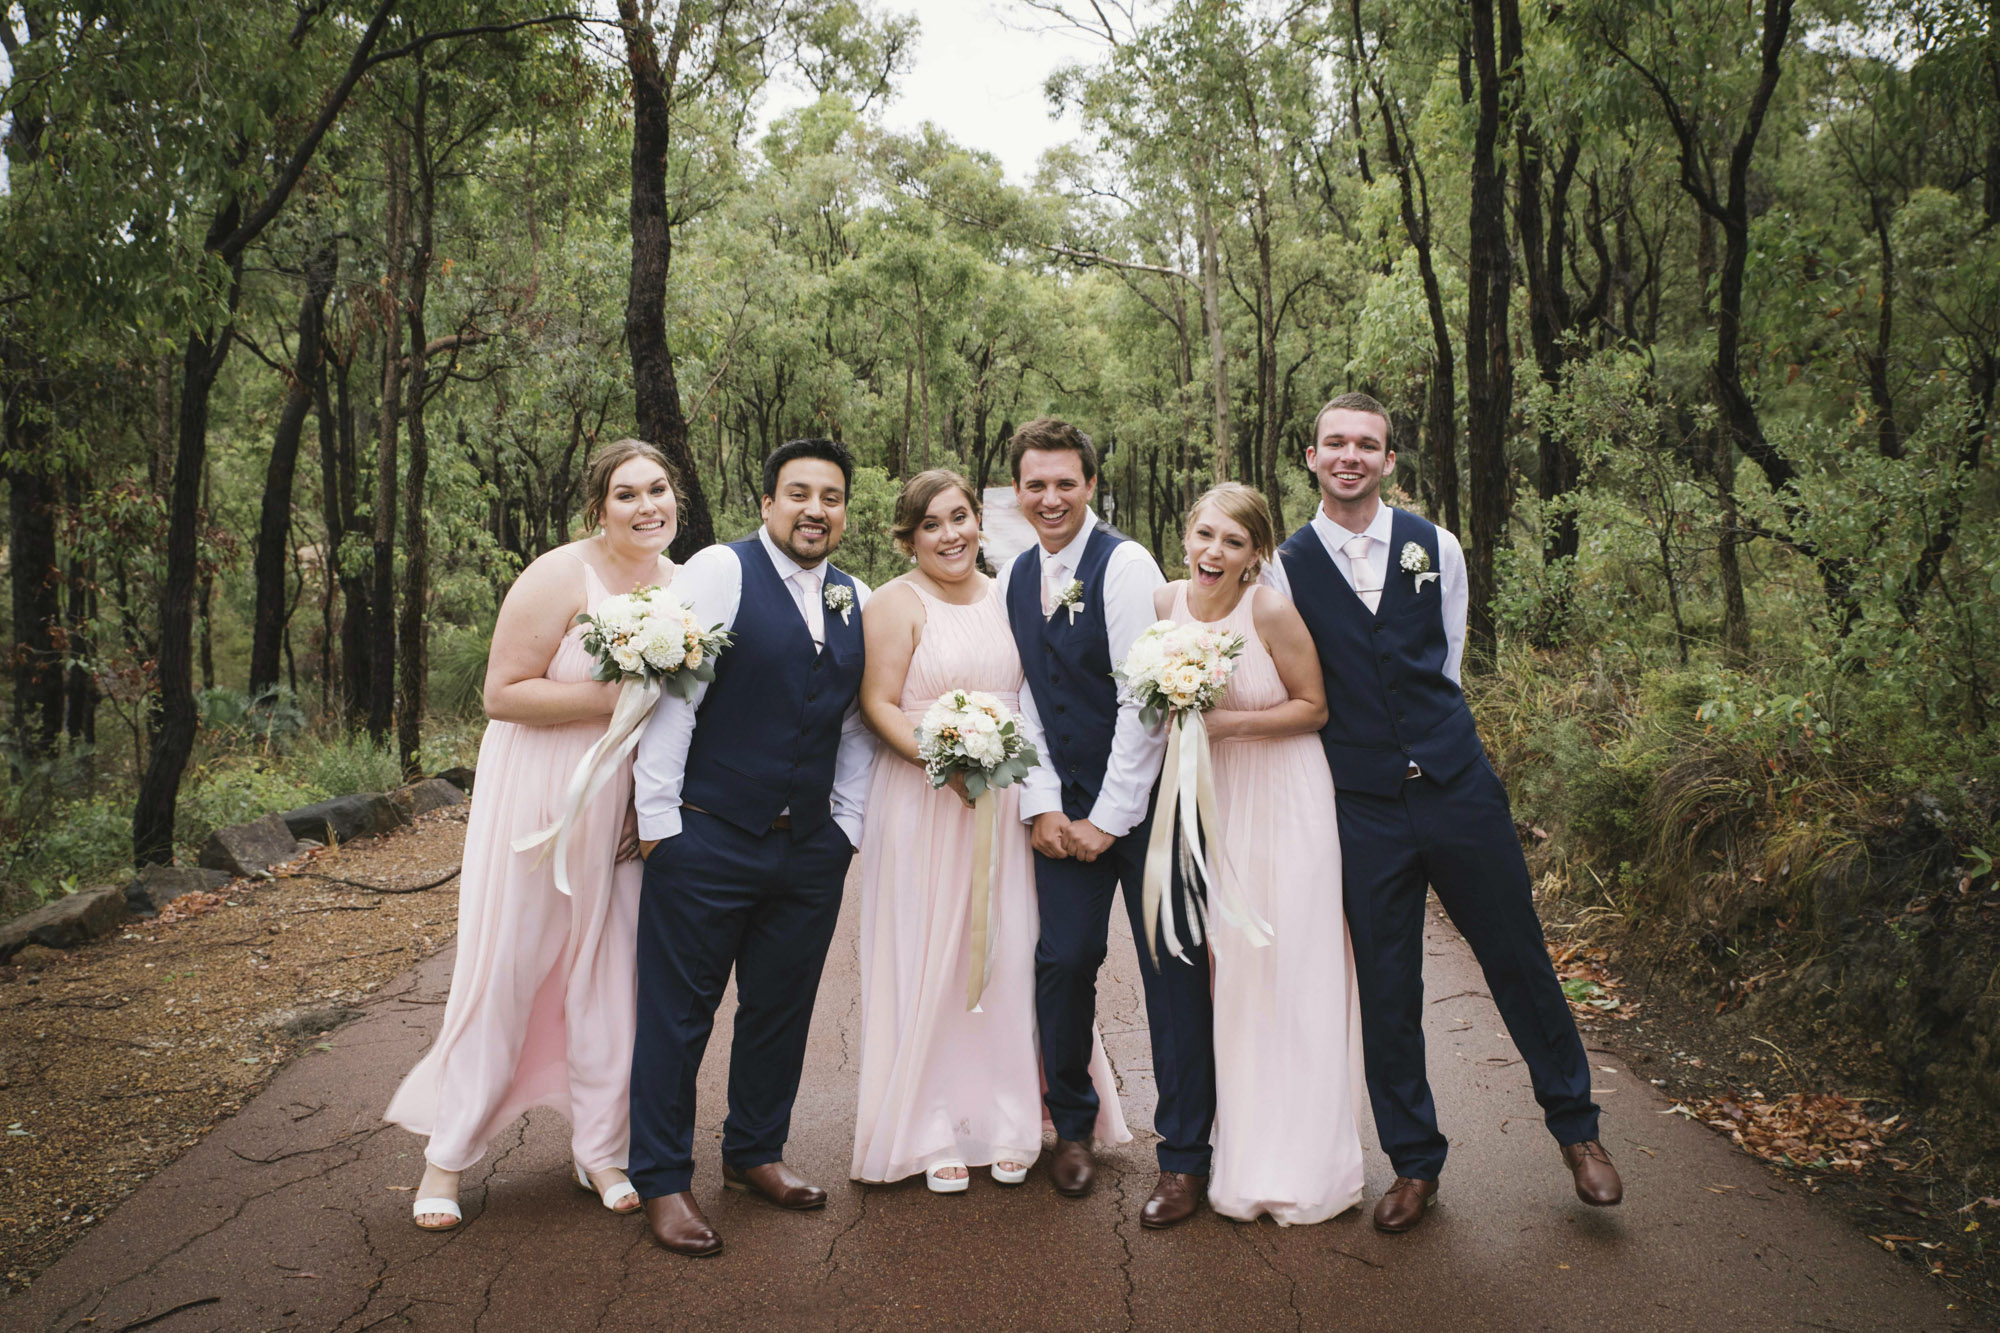 Angie-Roe-Photography-Wedding-Perth-Northam-Wheatbelt-Country-Rural (144).jpg